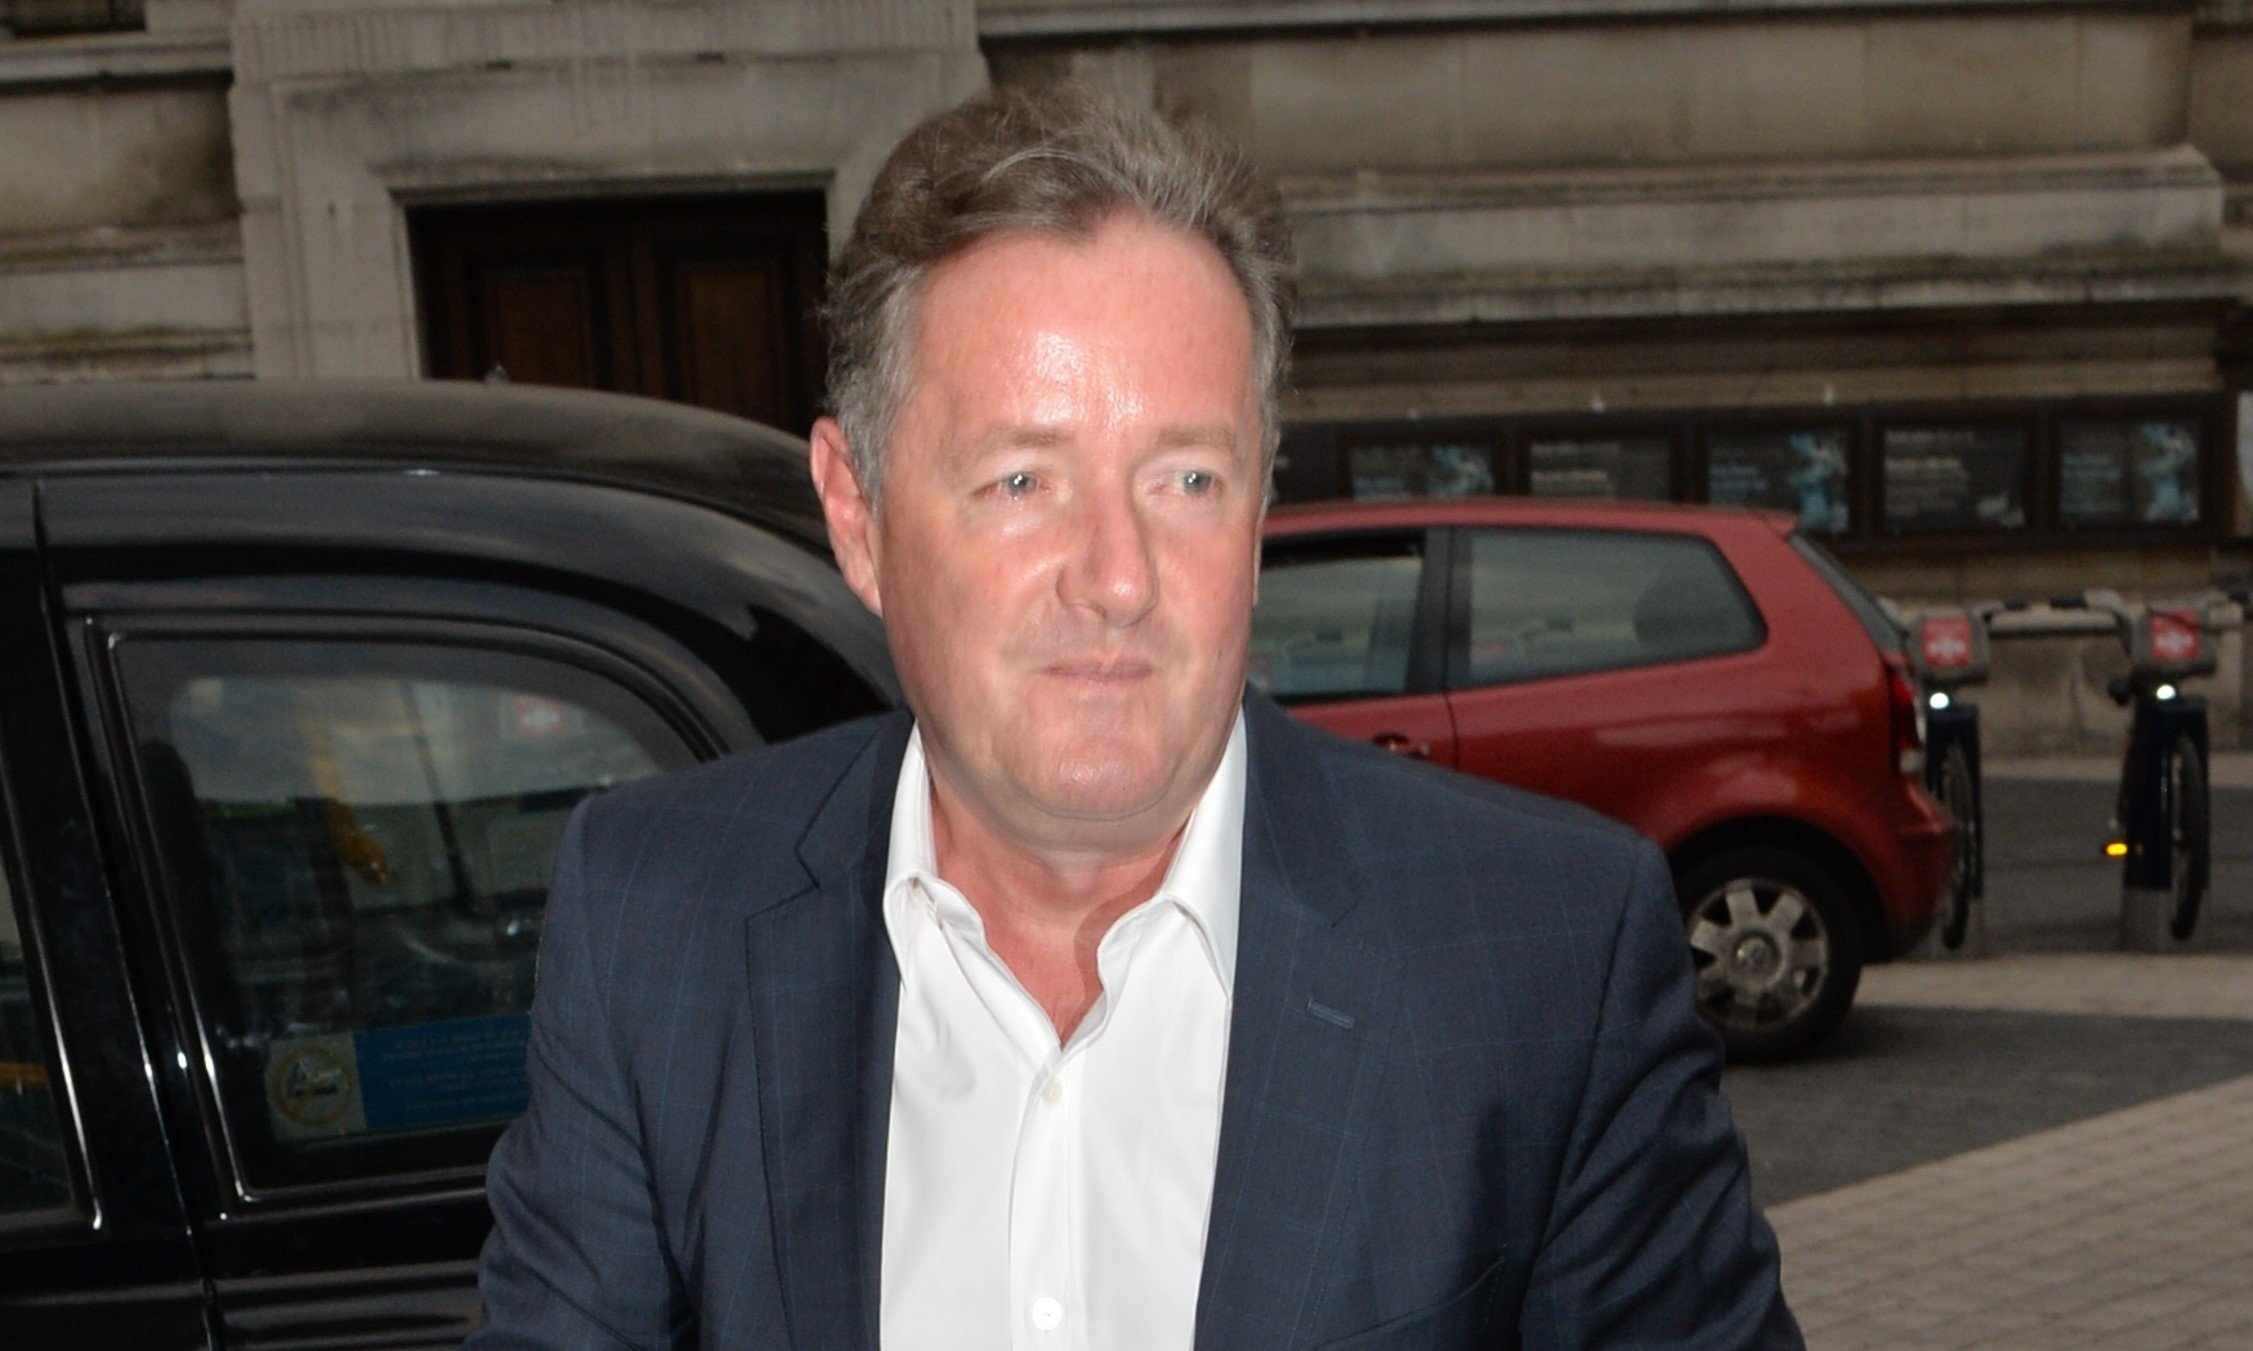 Piers Morgan admits to being caught speeding by police